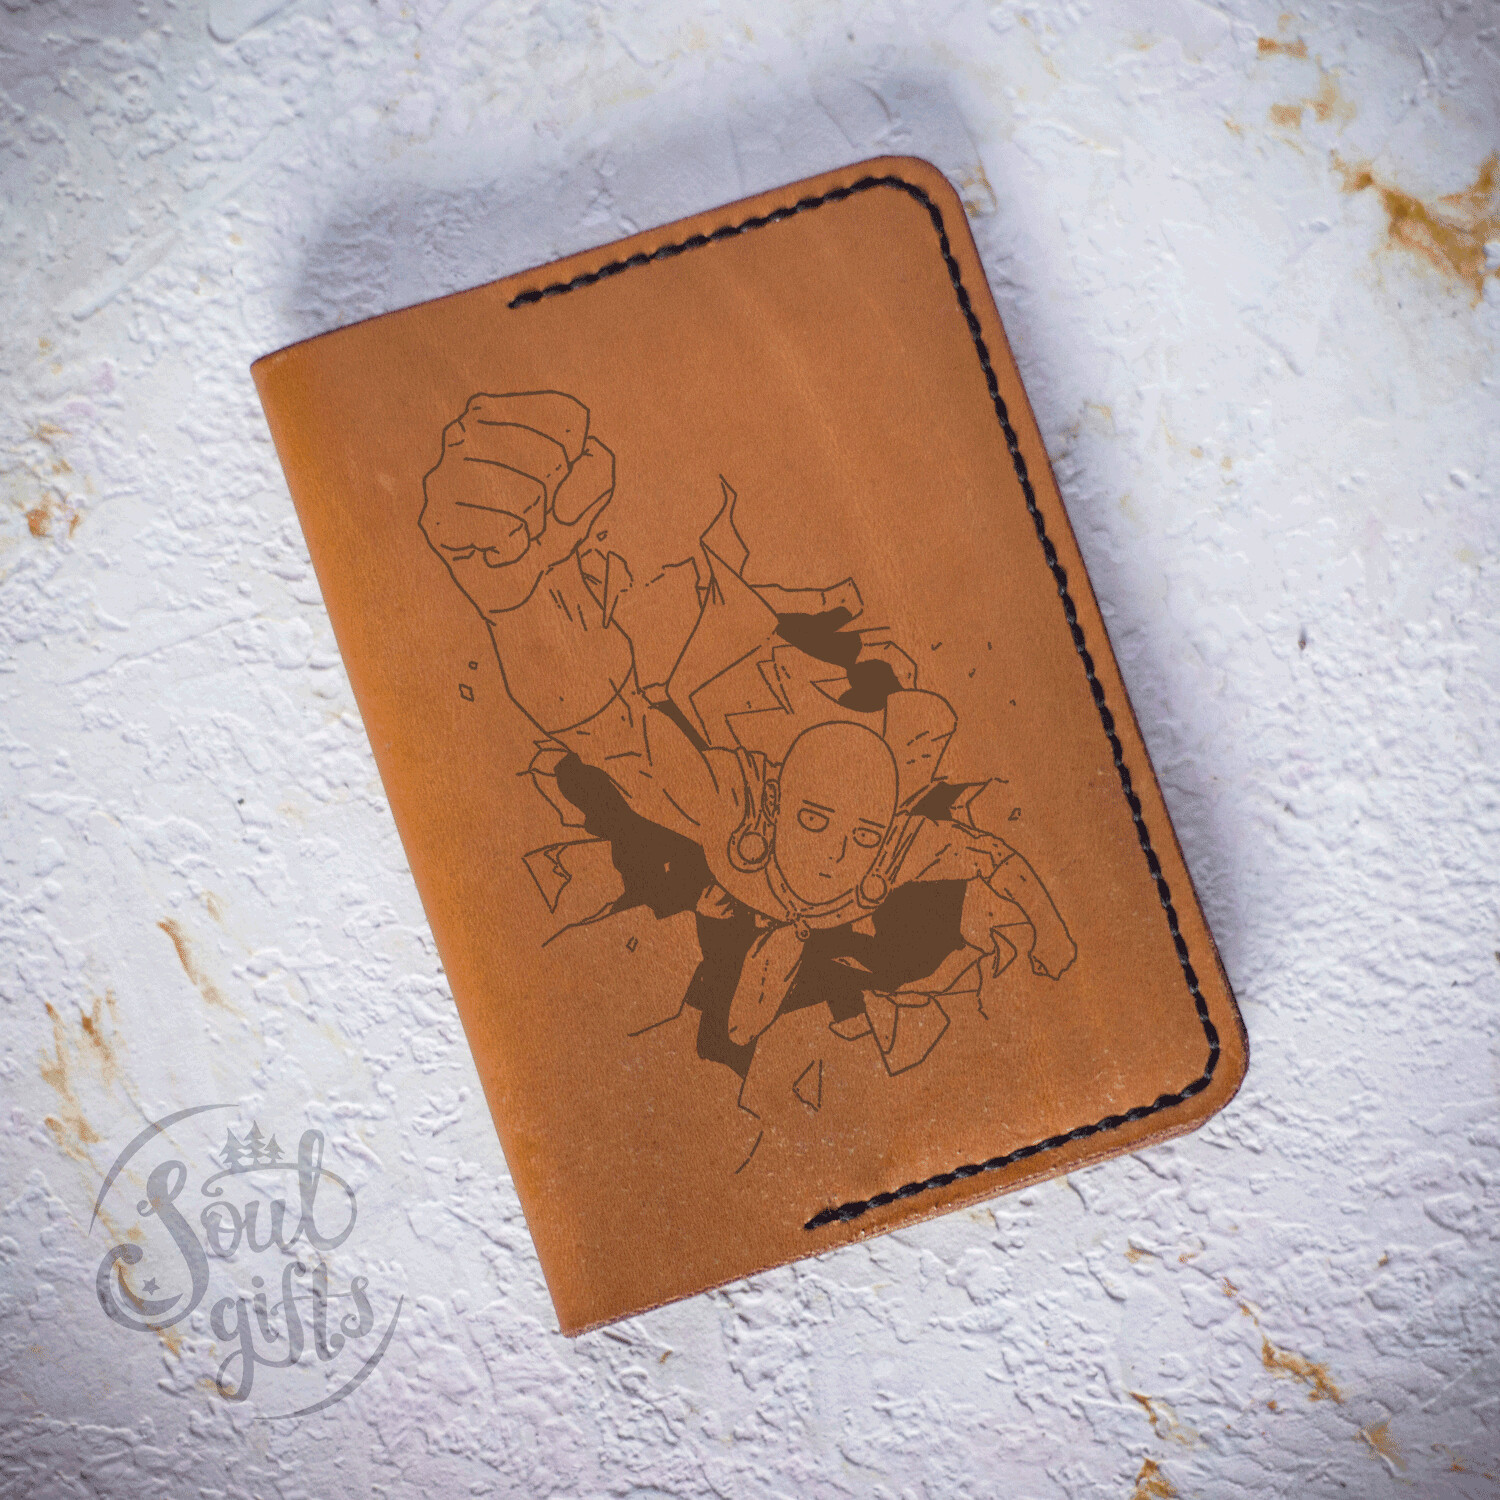 One Punch Man leather case/ Genuine leather cover for passport / Saitama Bald Cape gift